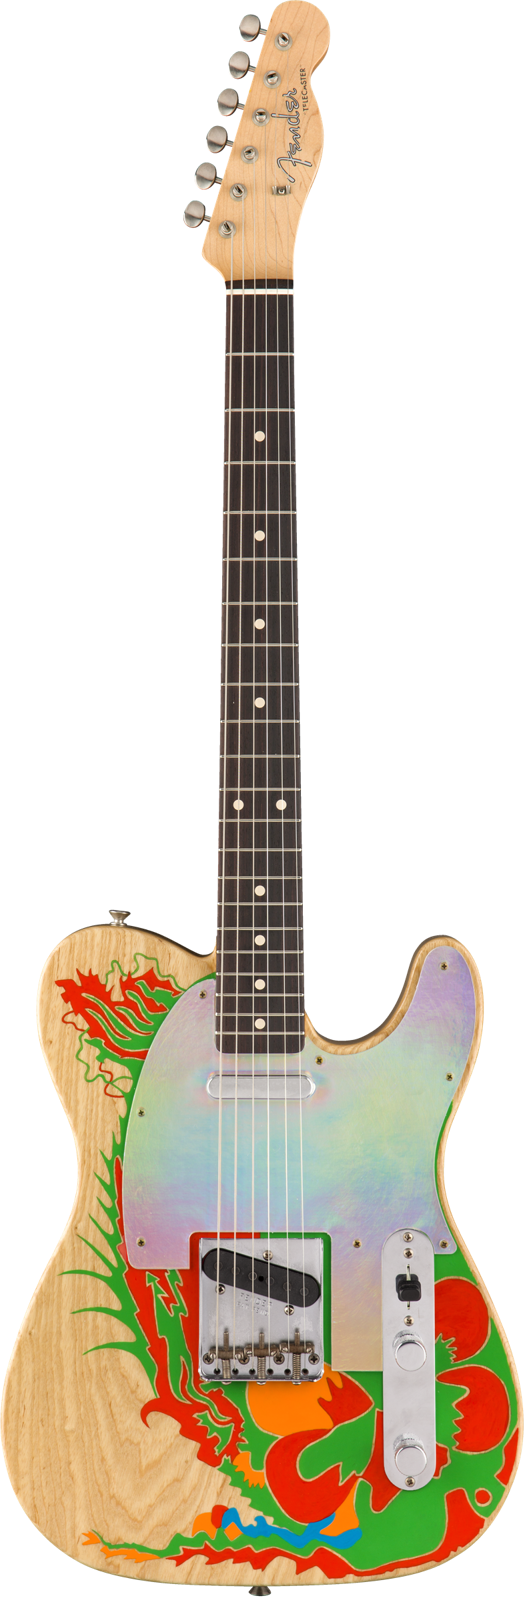 Fender Custom Shop Jimmy Page Telecaster Dragon & Mirrored Set – Masterbuilt by Paul Waller & Limited Edition Led Zeppelin Flipper : photo 3